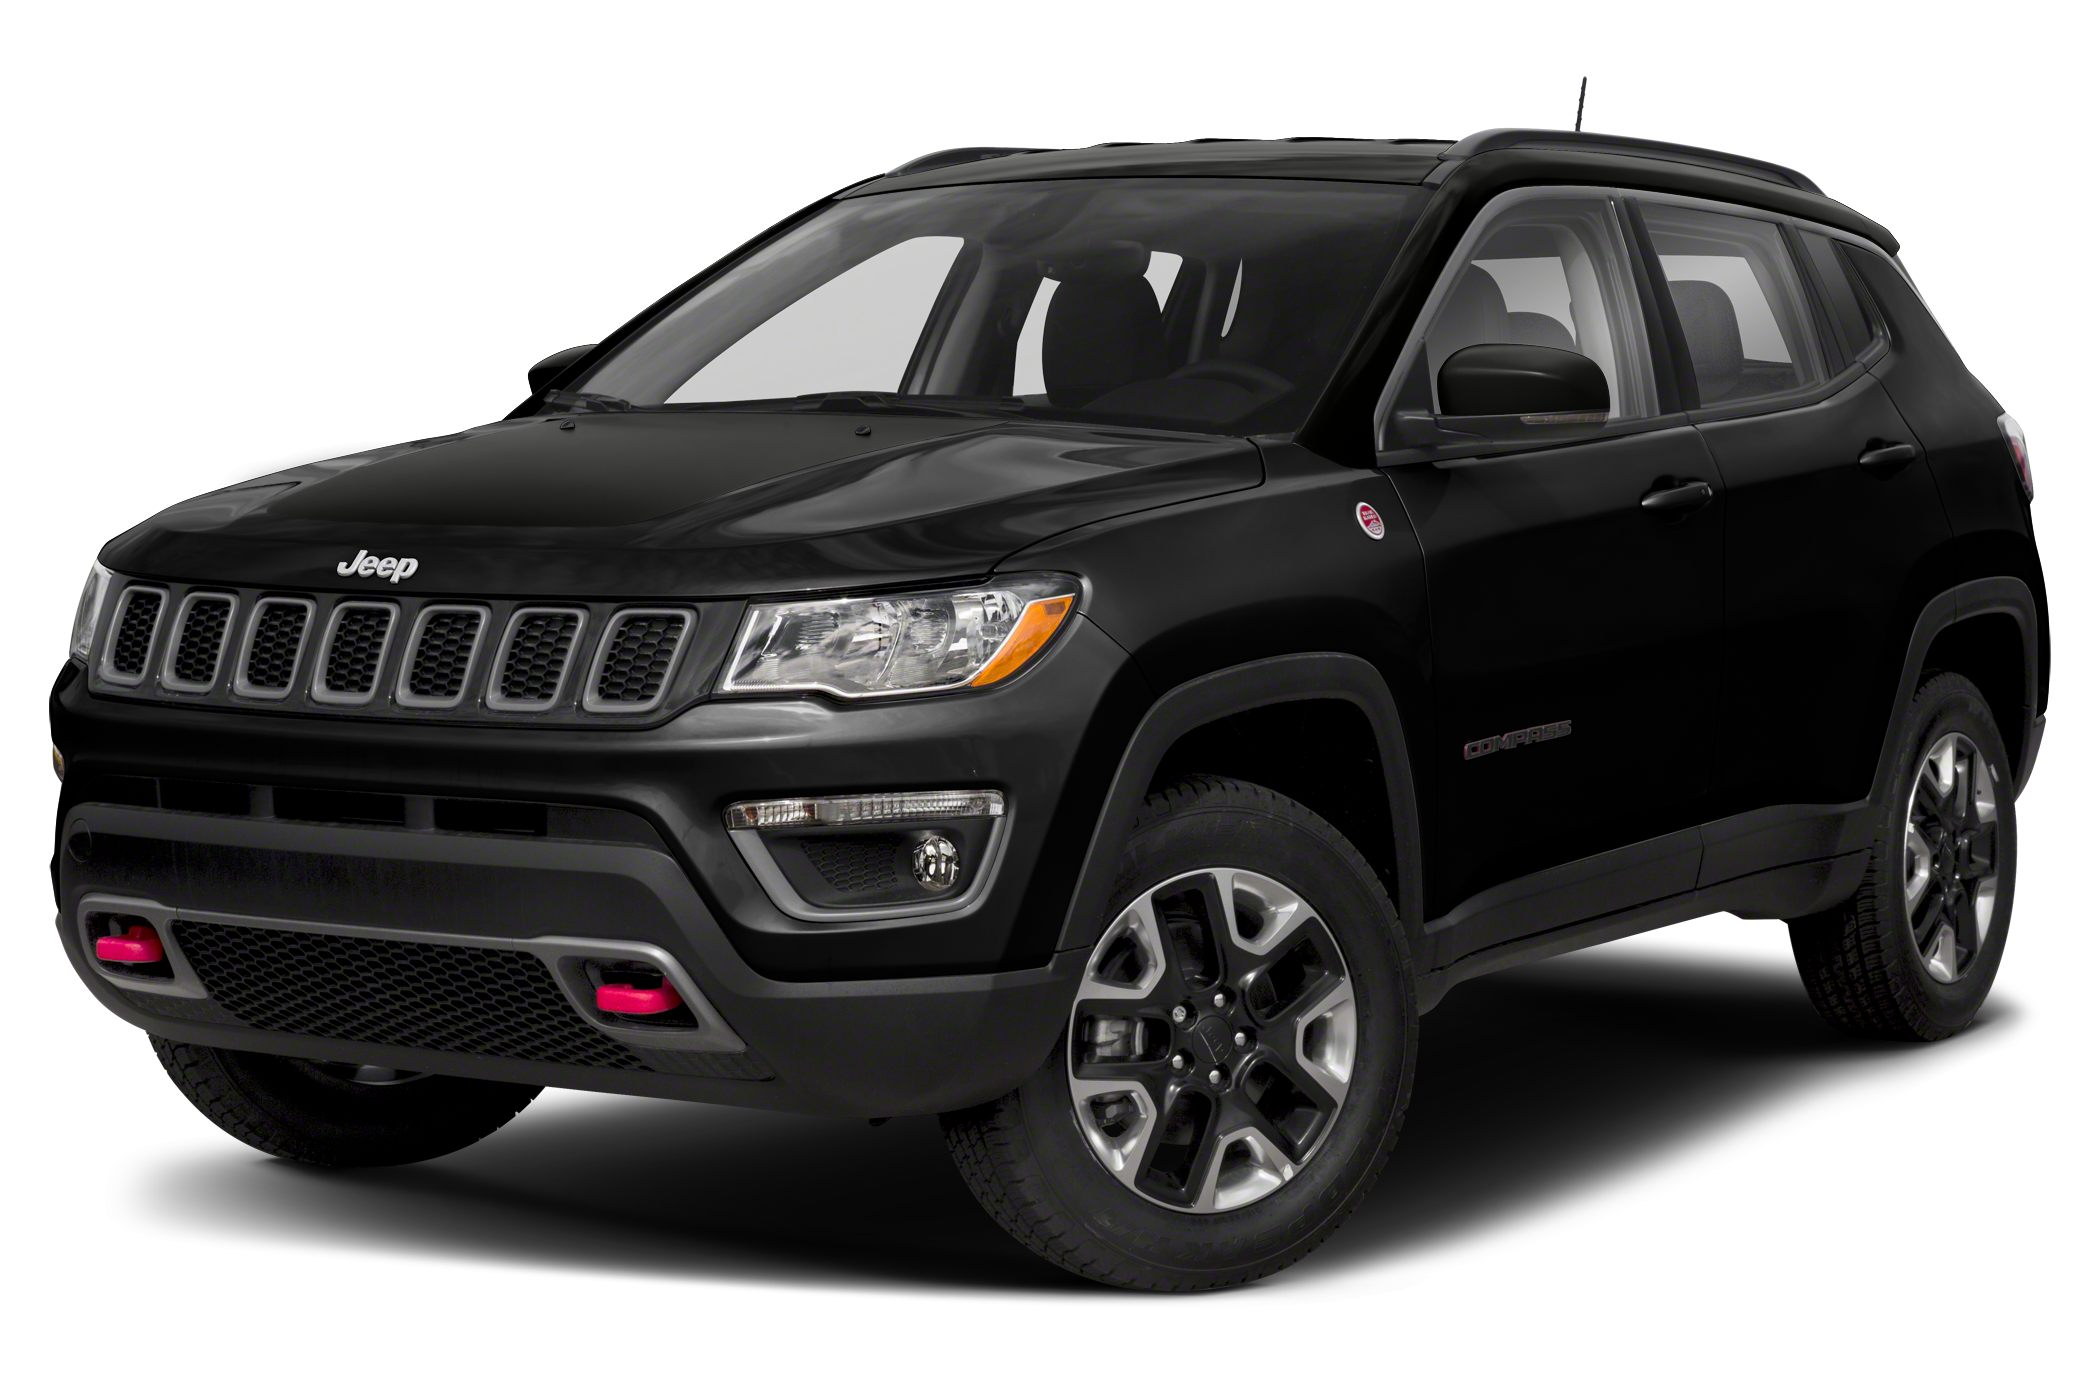 Jeep Compass Trailhawk 2019 Black